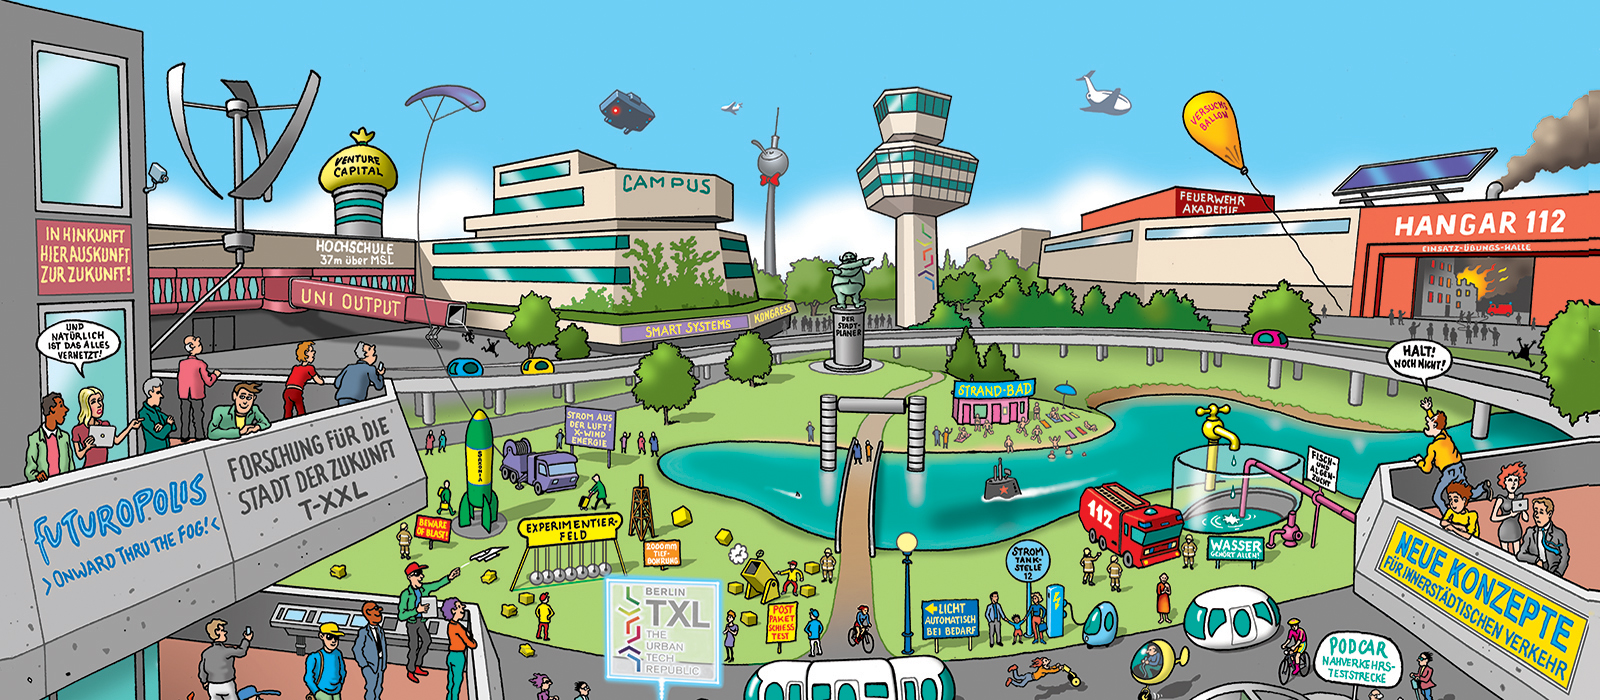 Comic-style sketch graphics that stylized some of the concepts for the subsequent use of the main terminal: green areas, many people during leisure activities such as kite flying